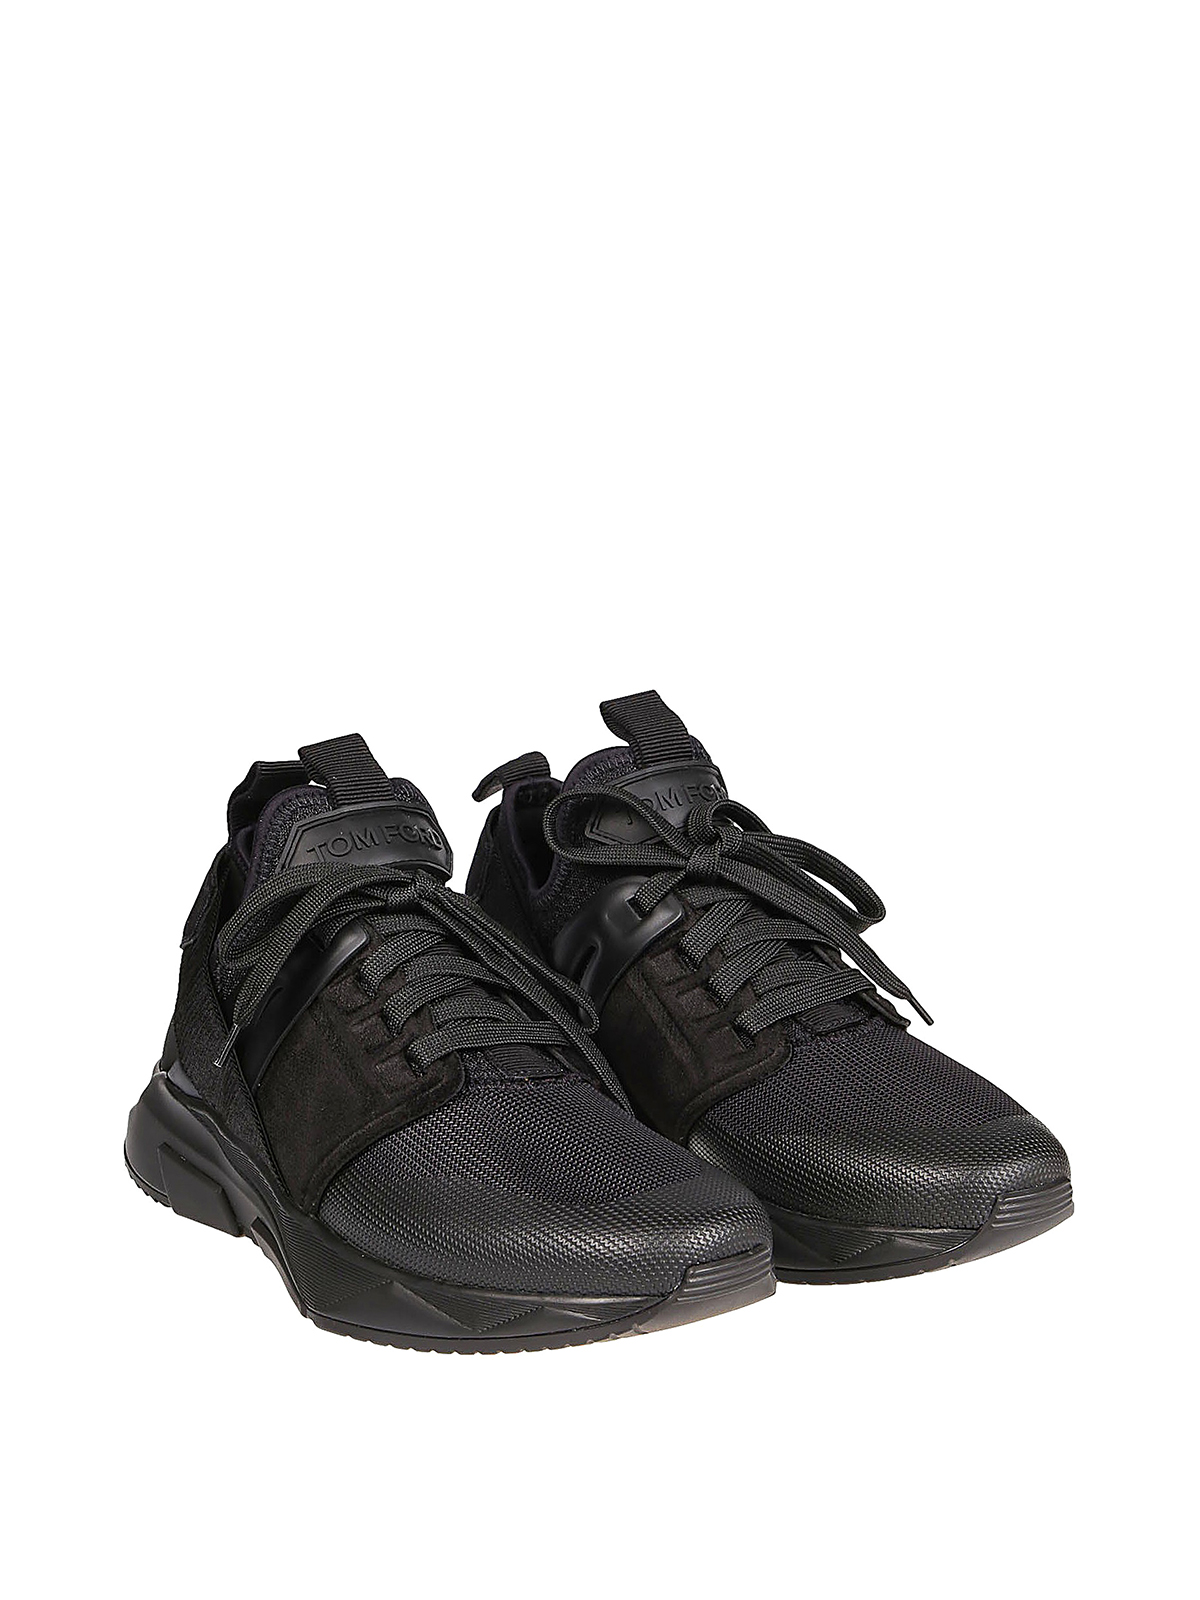 Tom Ford - Jago low top sneakers